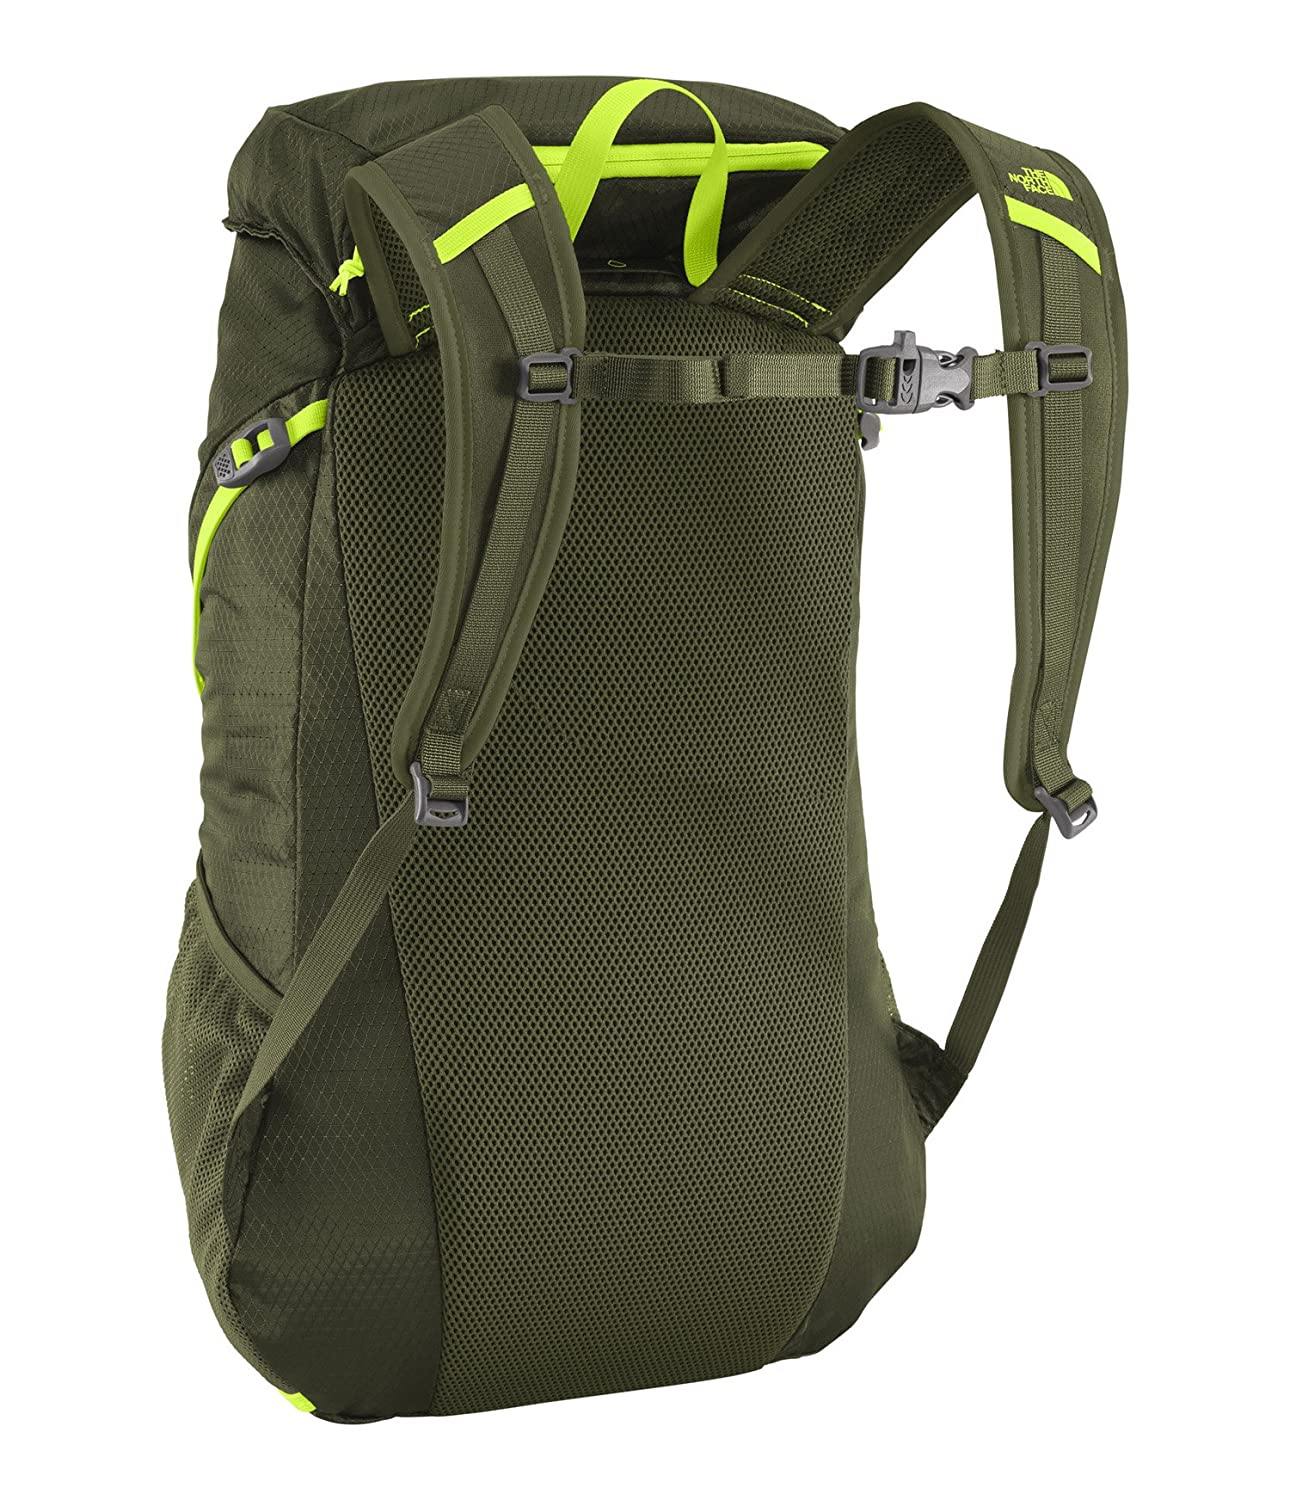 The North Face Diad Pro 22 Rucksack - Terrerium Green/Safety Green One Size Amazon.co.uk Sports u0026 Outdoors  sc 1 st  Amazon UK & The North Face Diad Pro 22 Rucksack - Terrerium Green/Safety Green ...